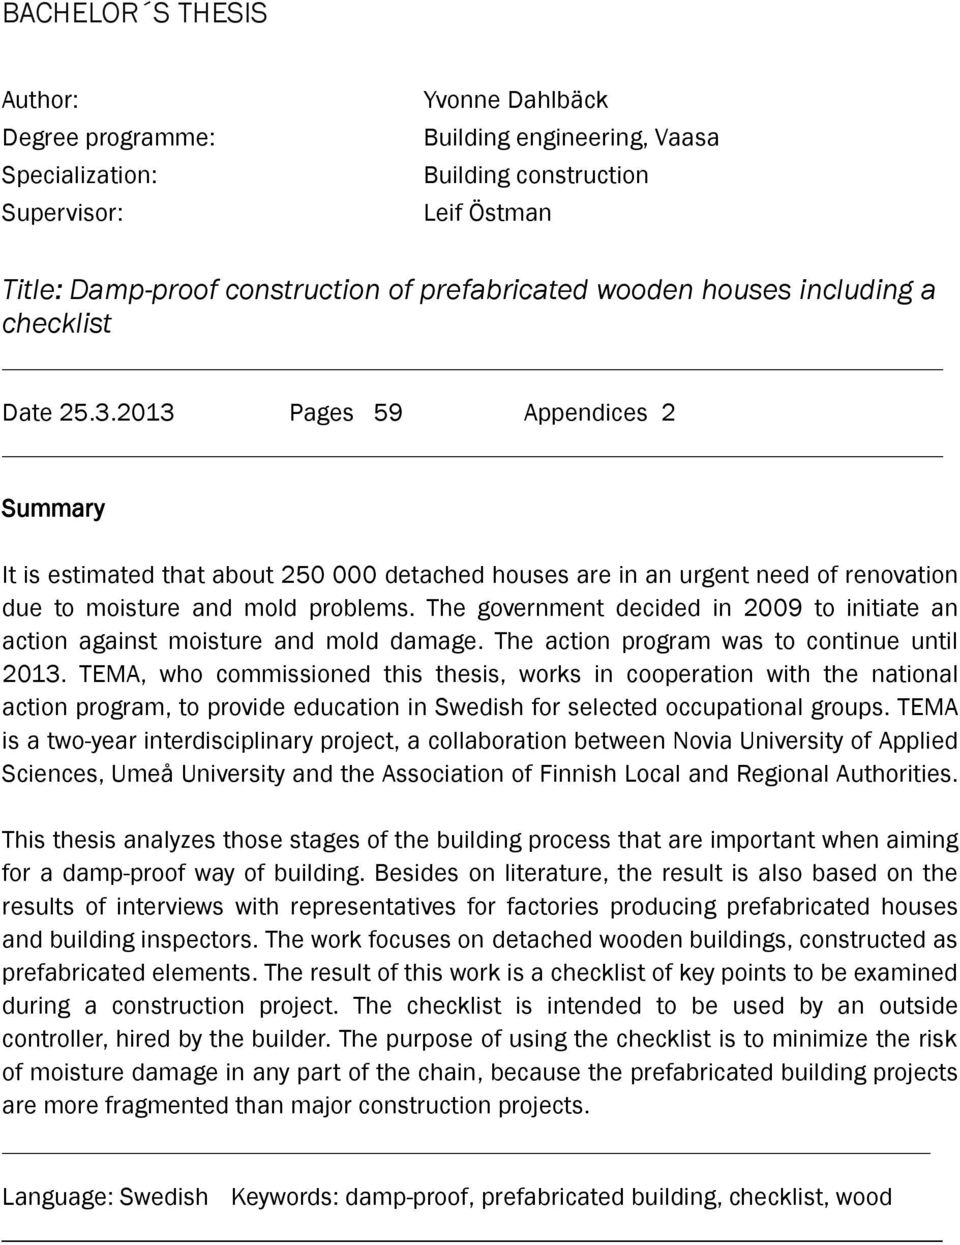 2013 Pages 59 Appendices 2 Summary It is estimated that about 250 000 detached houses are in an urgent need of renovation due to moisture and mold problems.